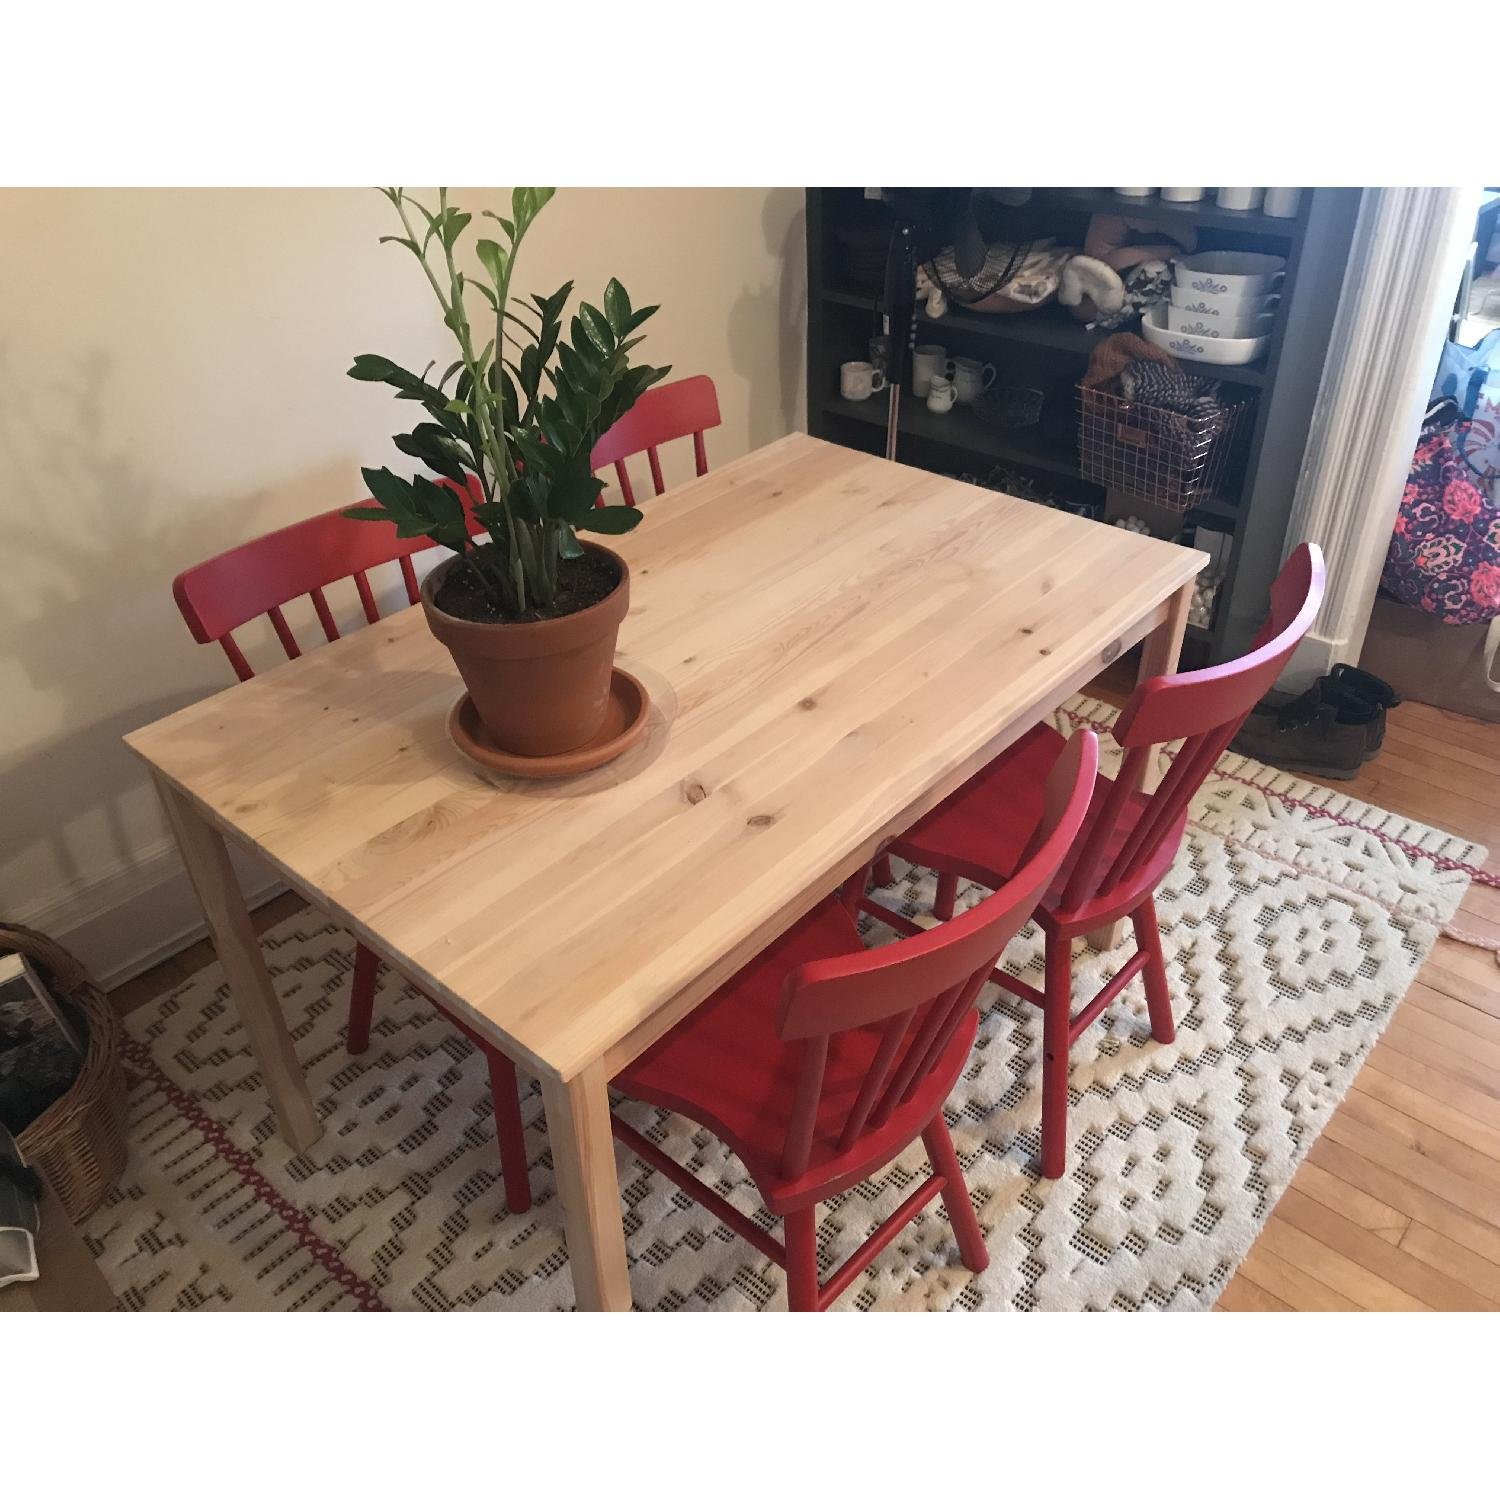 Ikea Ingo Natural Pinewood Dining Table w/ 4 Norraryd Chairs-1